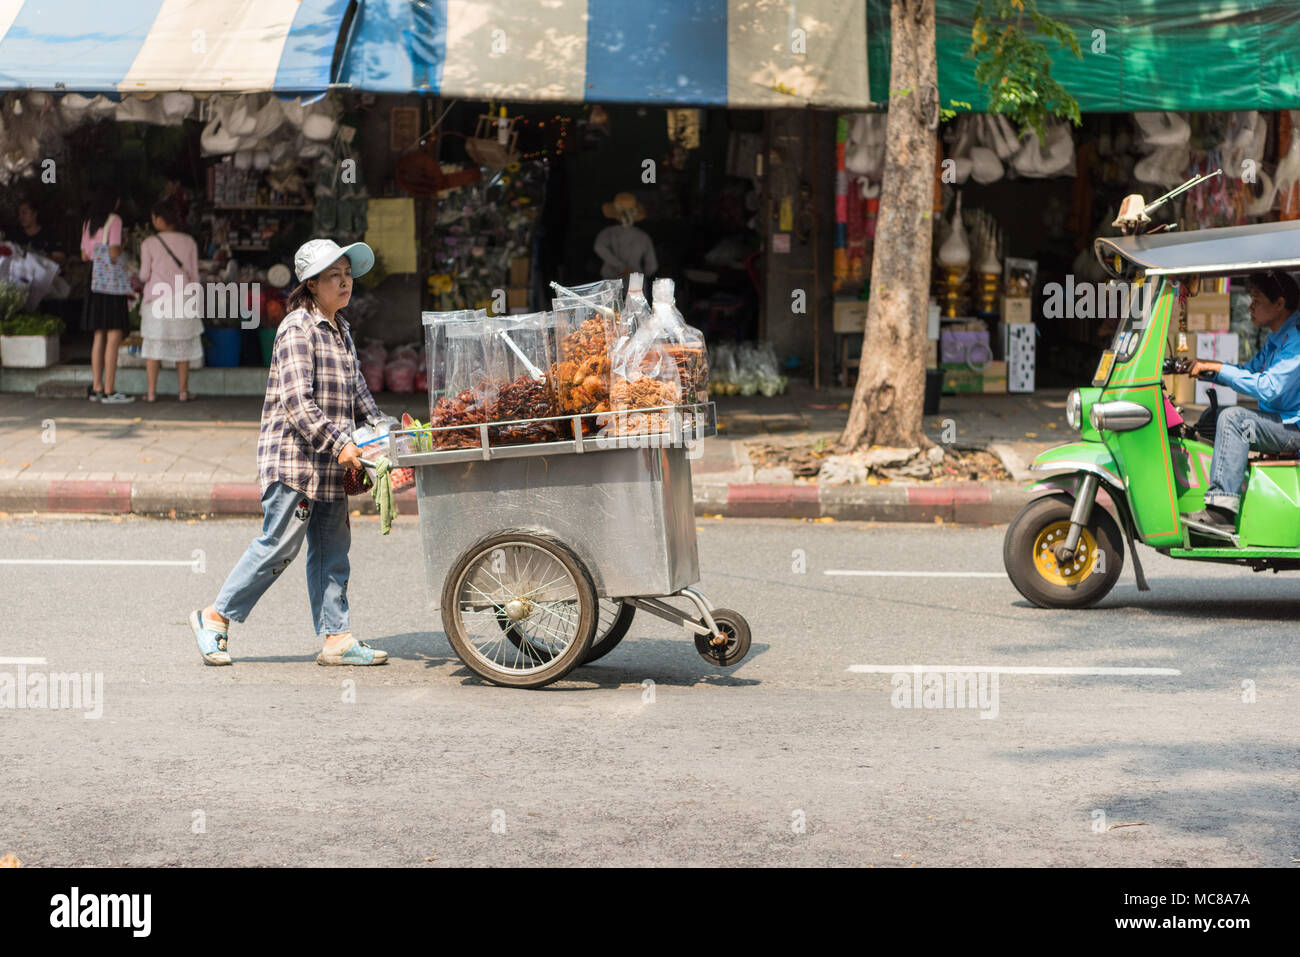 A world ruled by cats | Rol A-street-food-vendor-pushes-her-cart-on-a-road-in-bangkok-thailand-MC8A7A